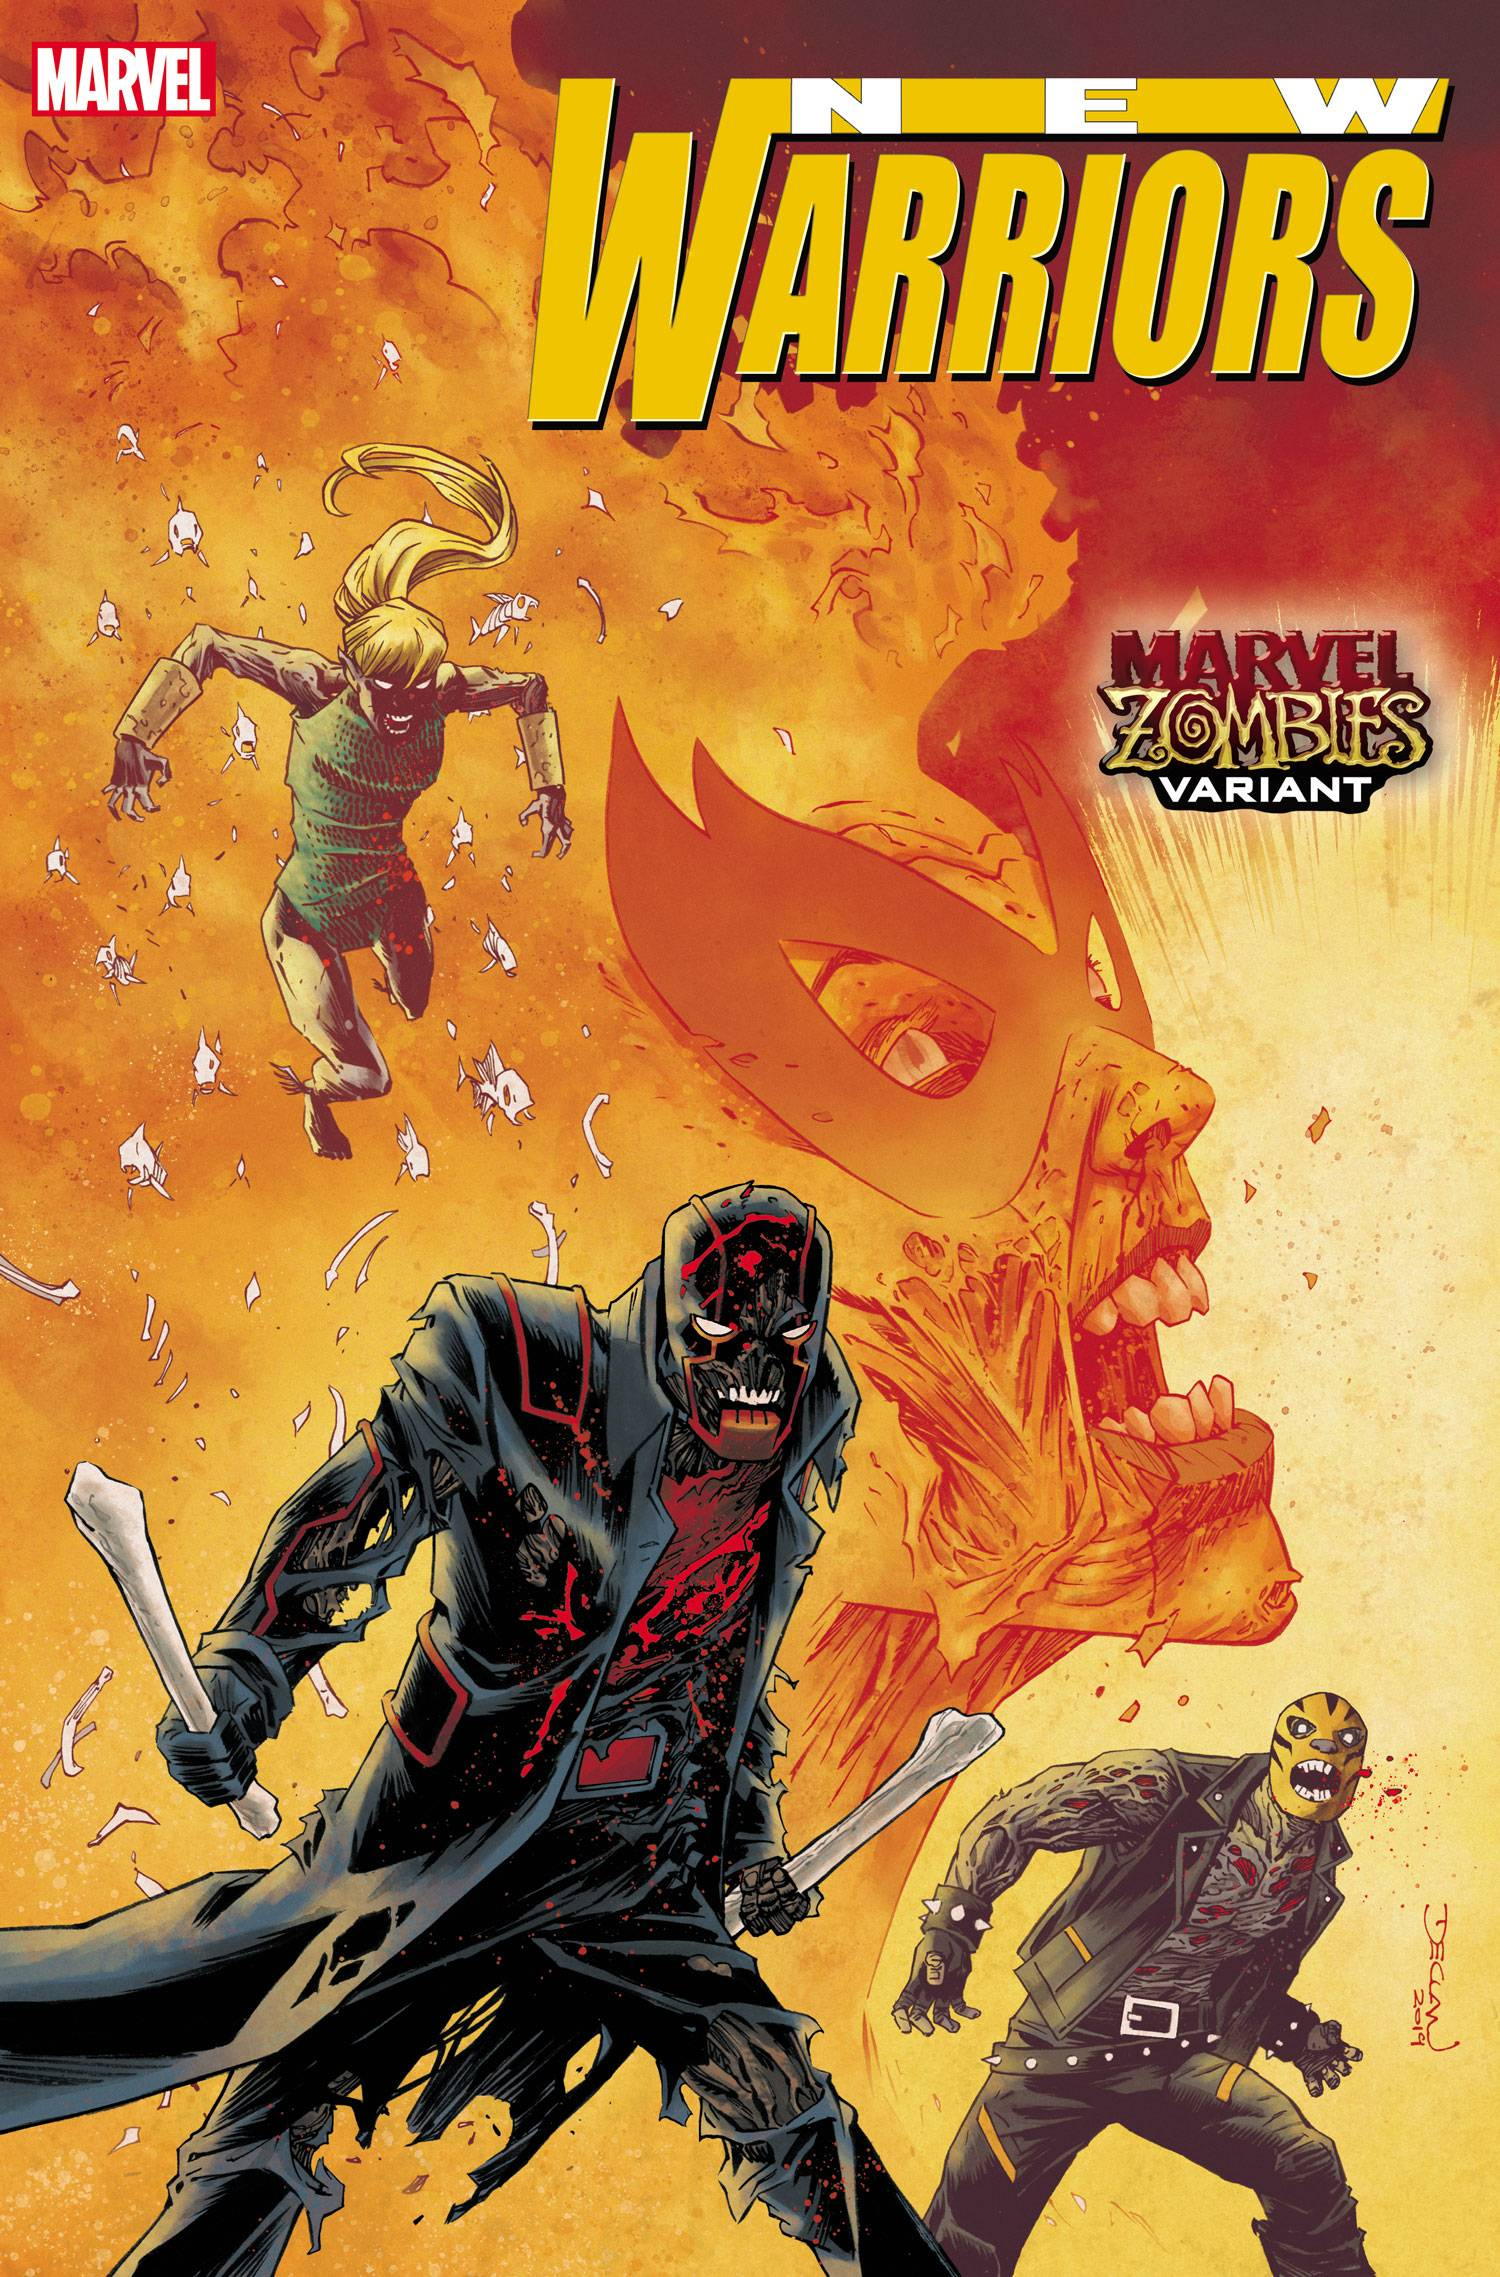 04/15/2020 NEW WARRIORS #1 (OF 5) SHALVEY MARVEL ZOMBIES VAR OUT